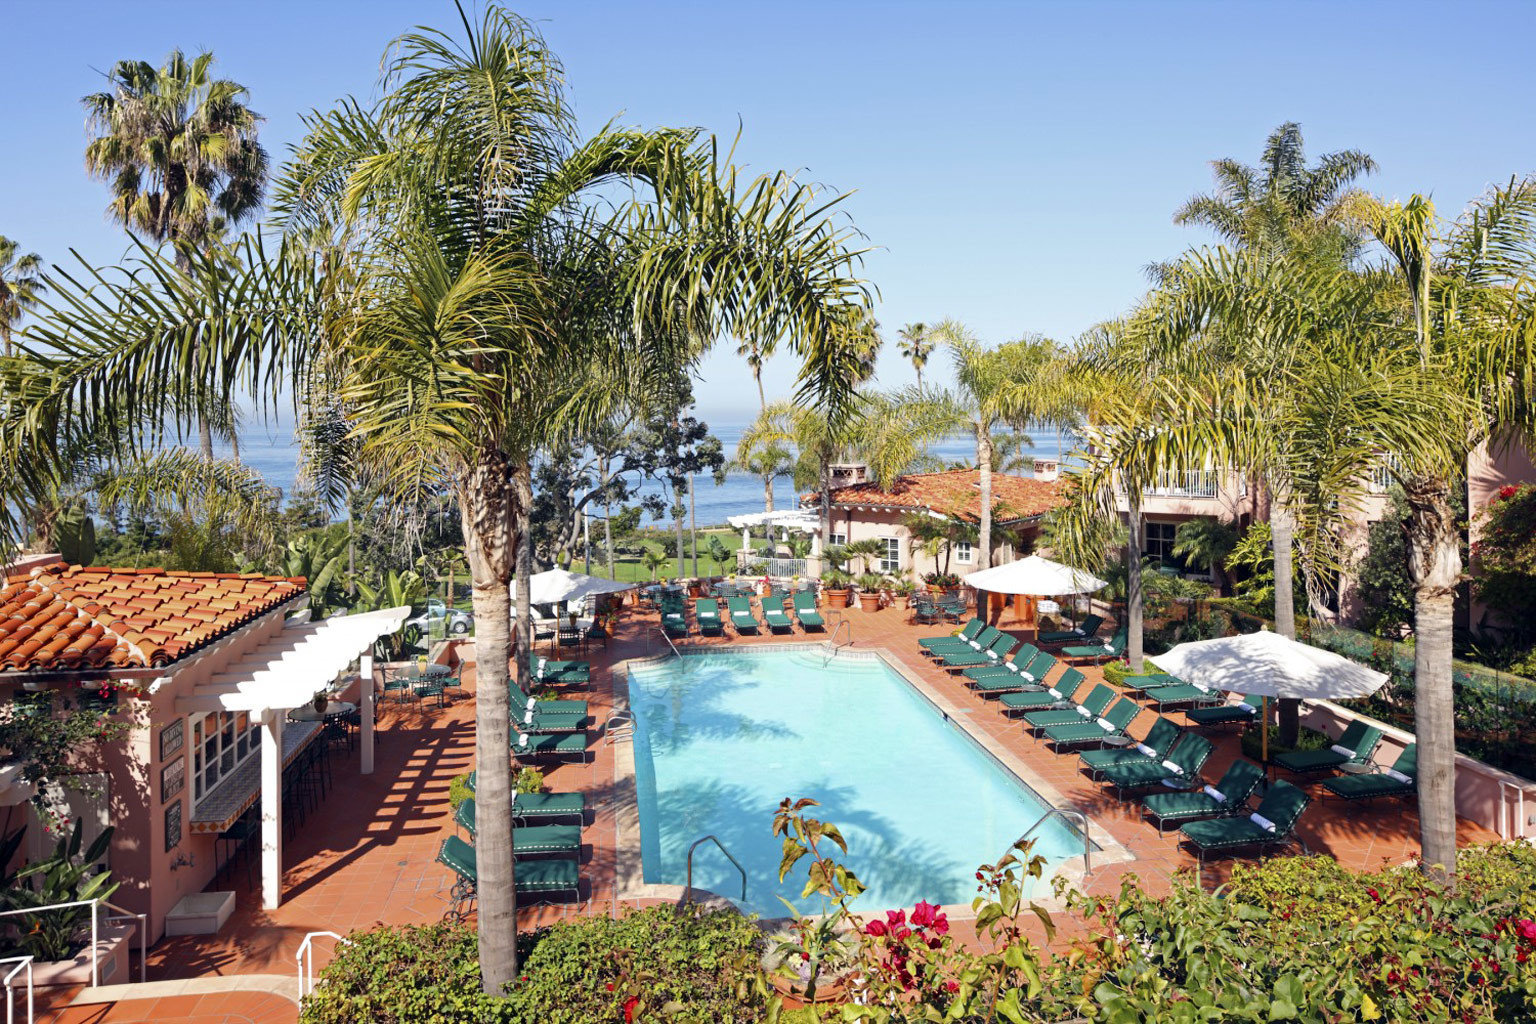 Elegant Hotels Luxury Patio Pool Tropical tree outdoor sky Resort leisure palm building vacation estate arecales Garden Village plant Water park amusement park swimming pool area several